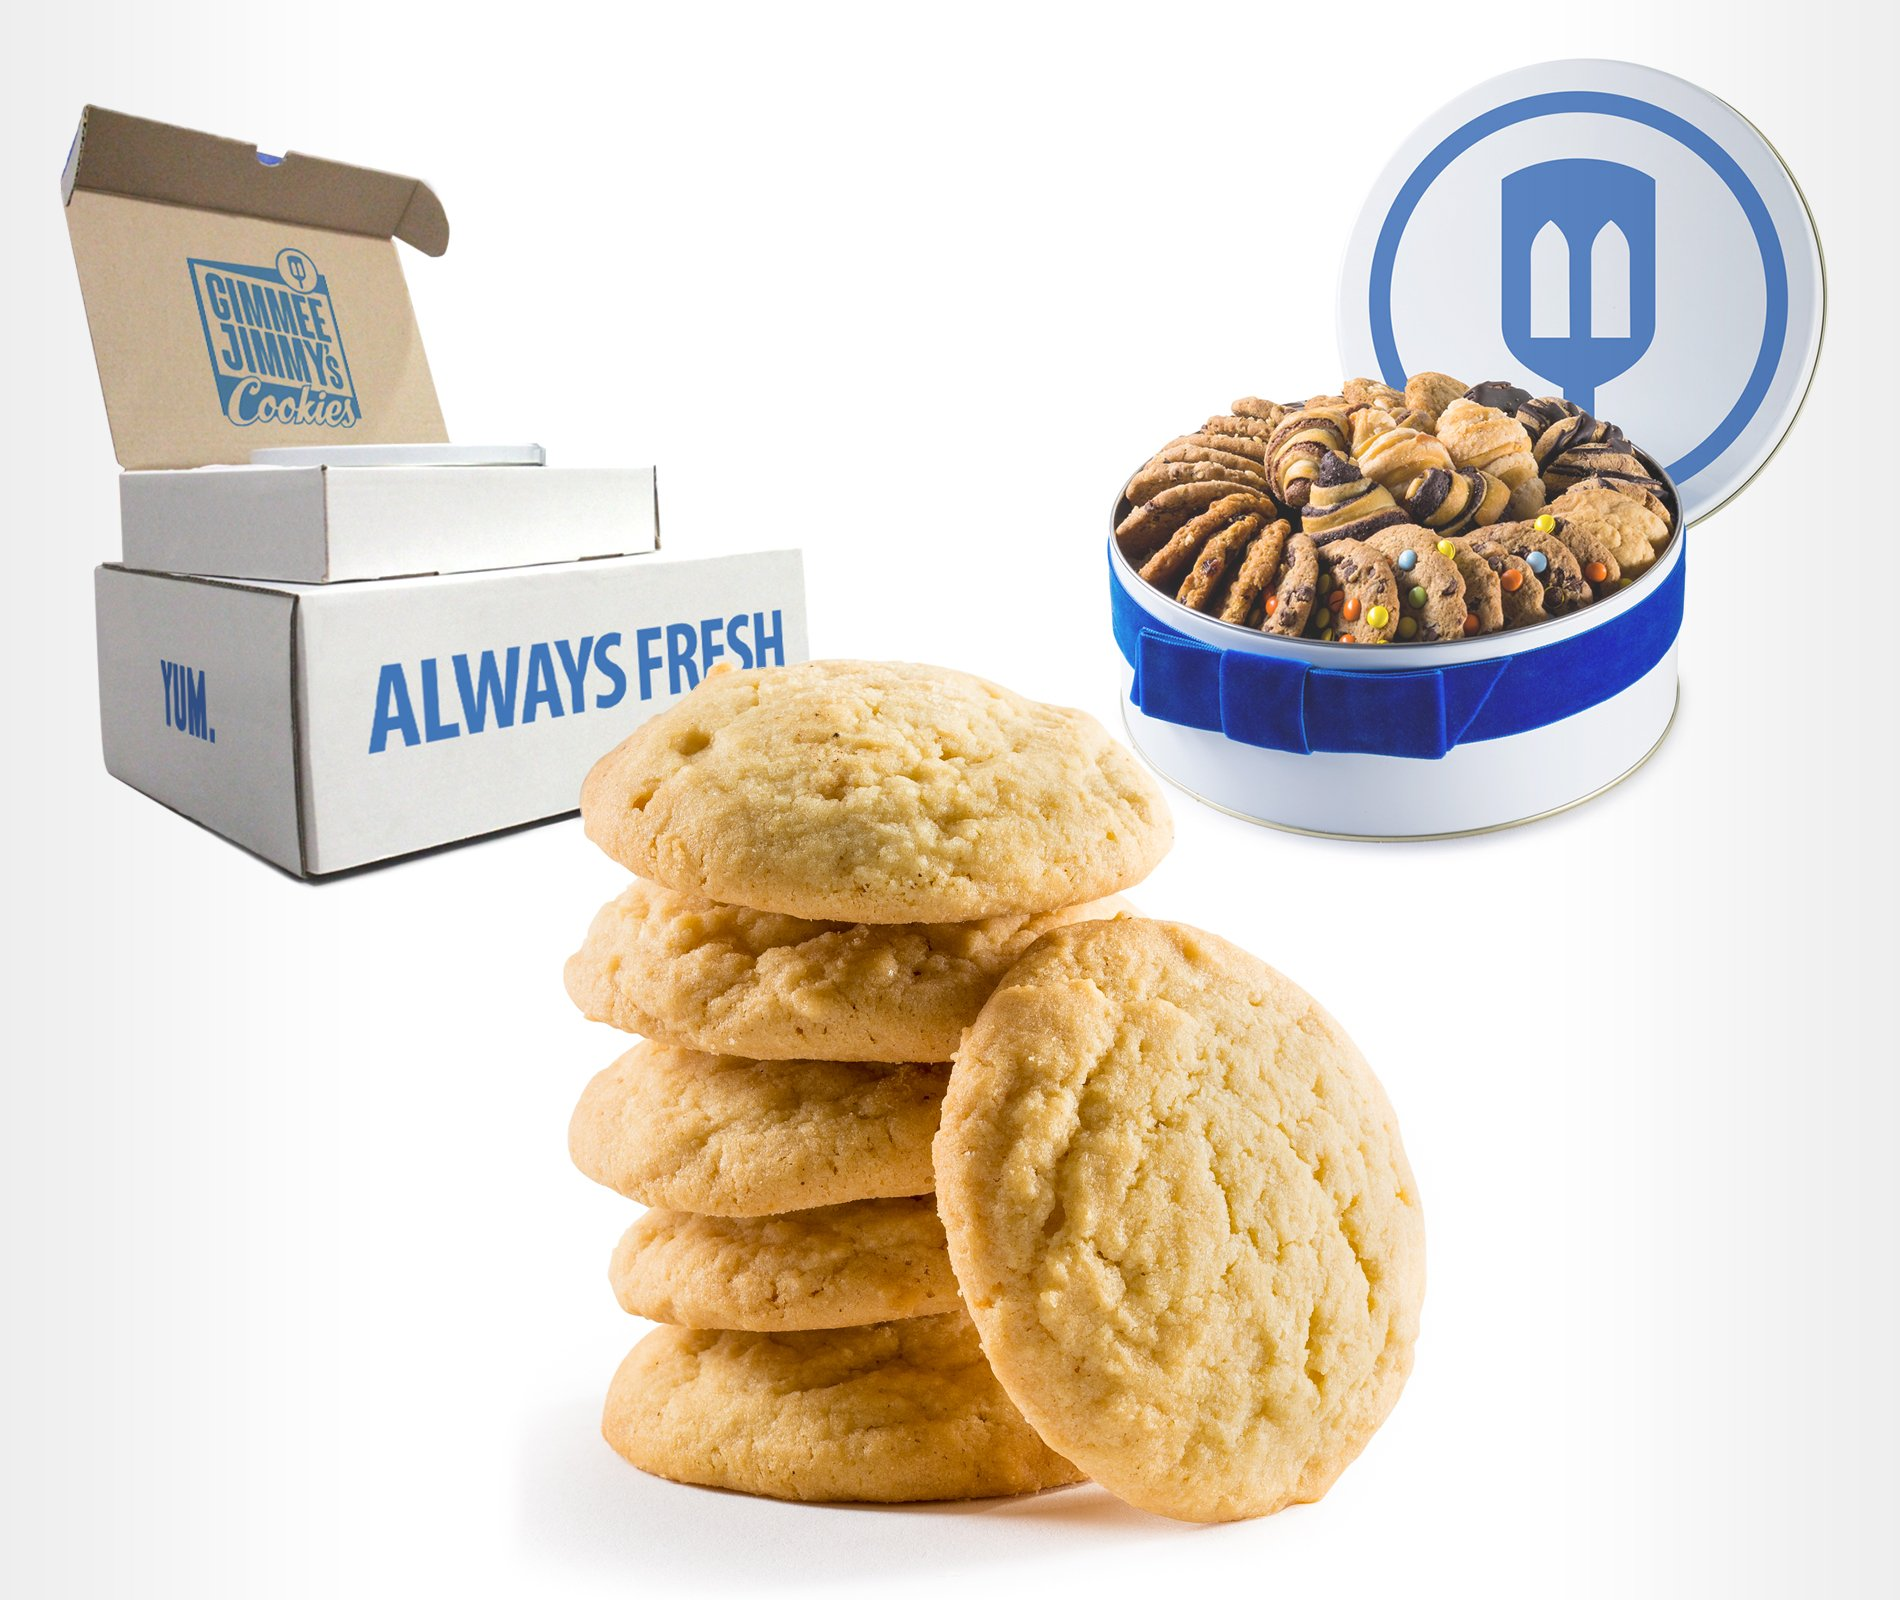 Gimmee Jimmy's Cookies| Fresh Baked Sugar Cookies- 14 Pounds of Beautiful Cookies in a Perfect Cookie Tin